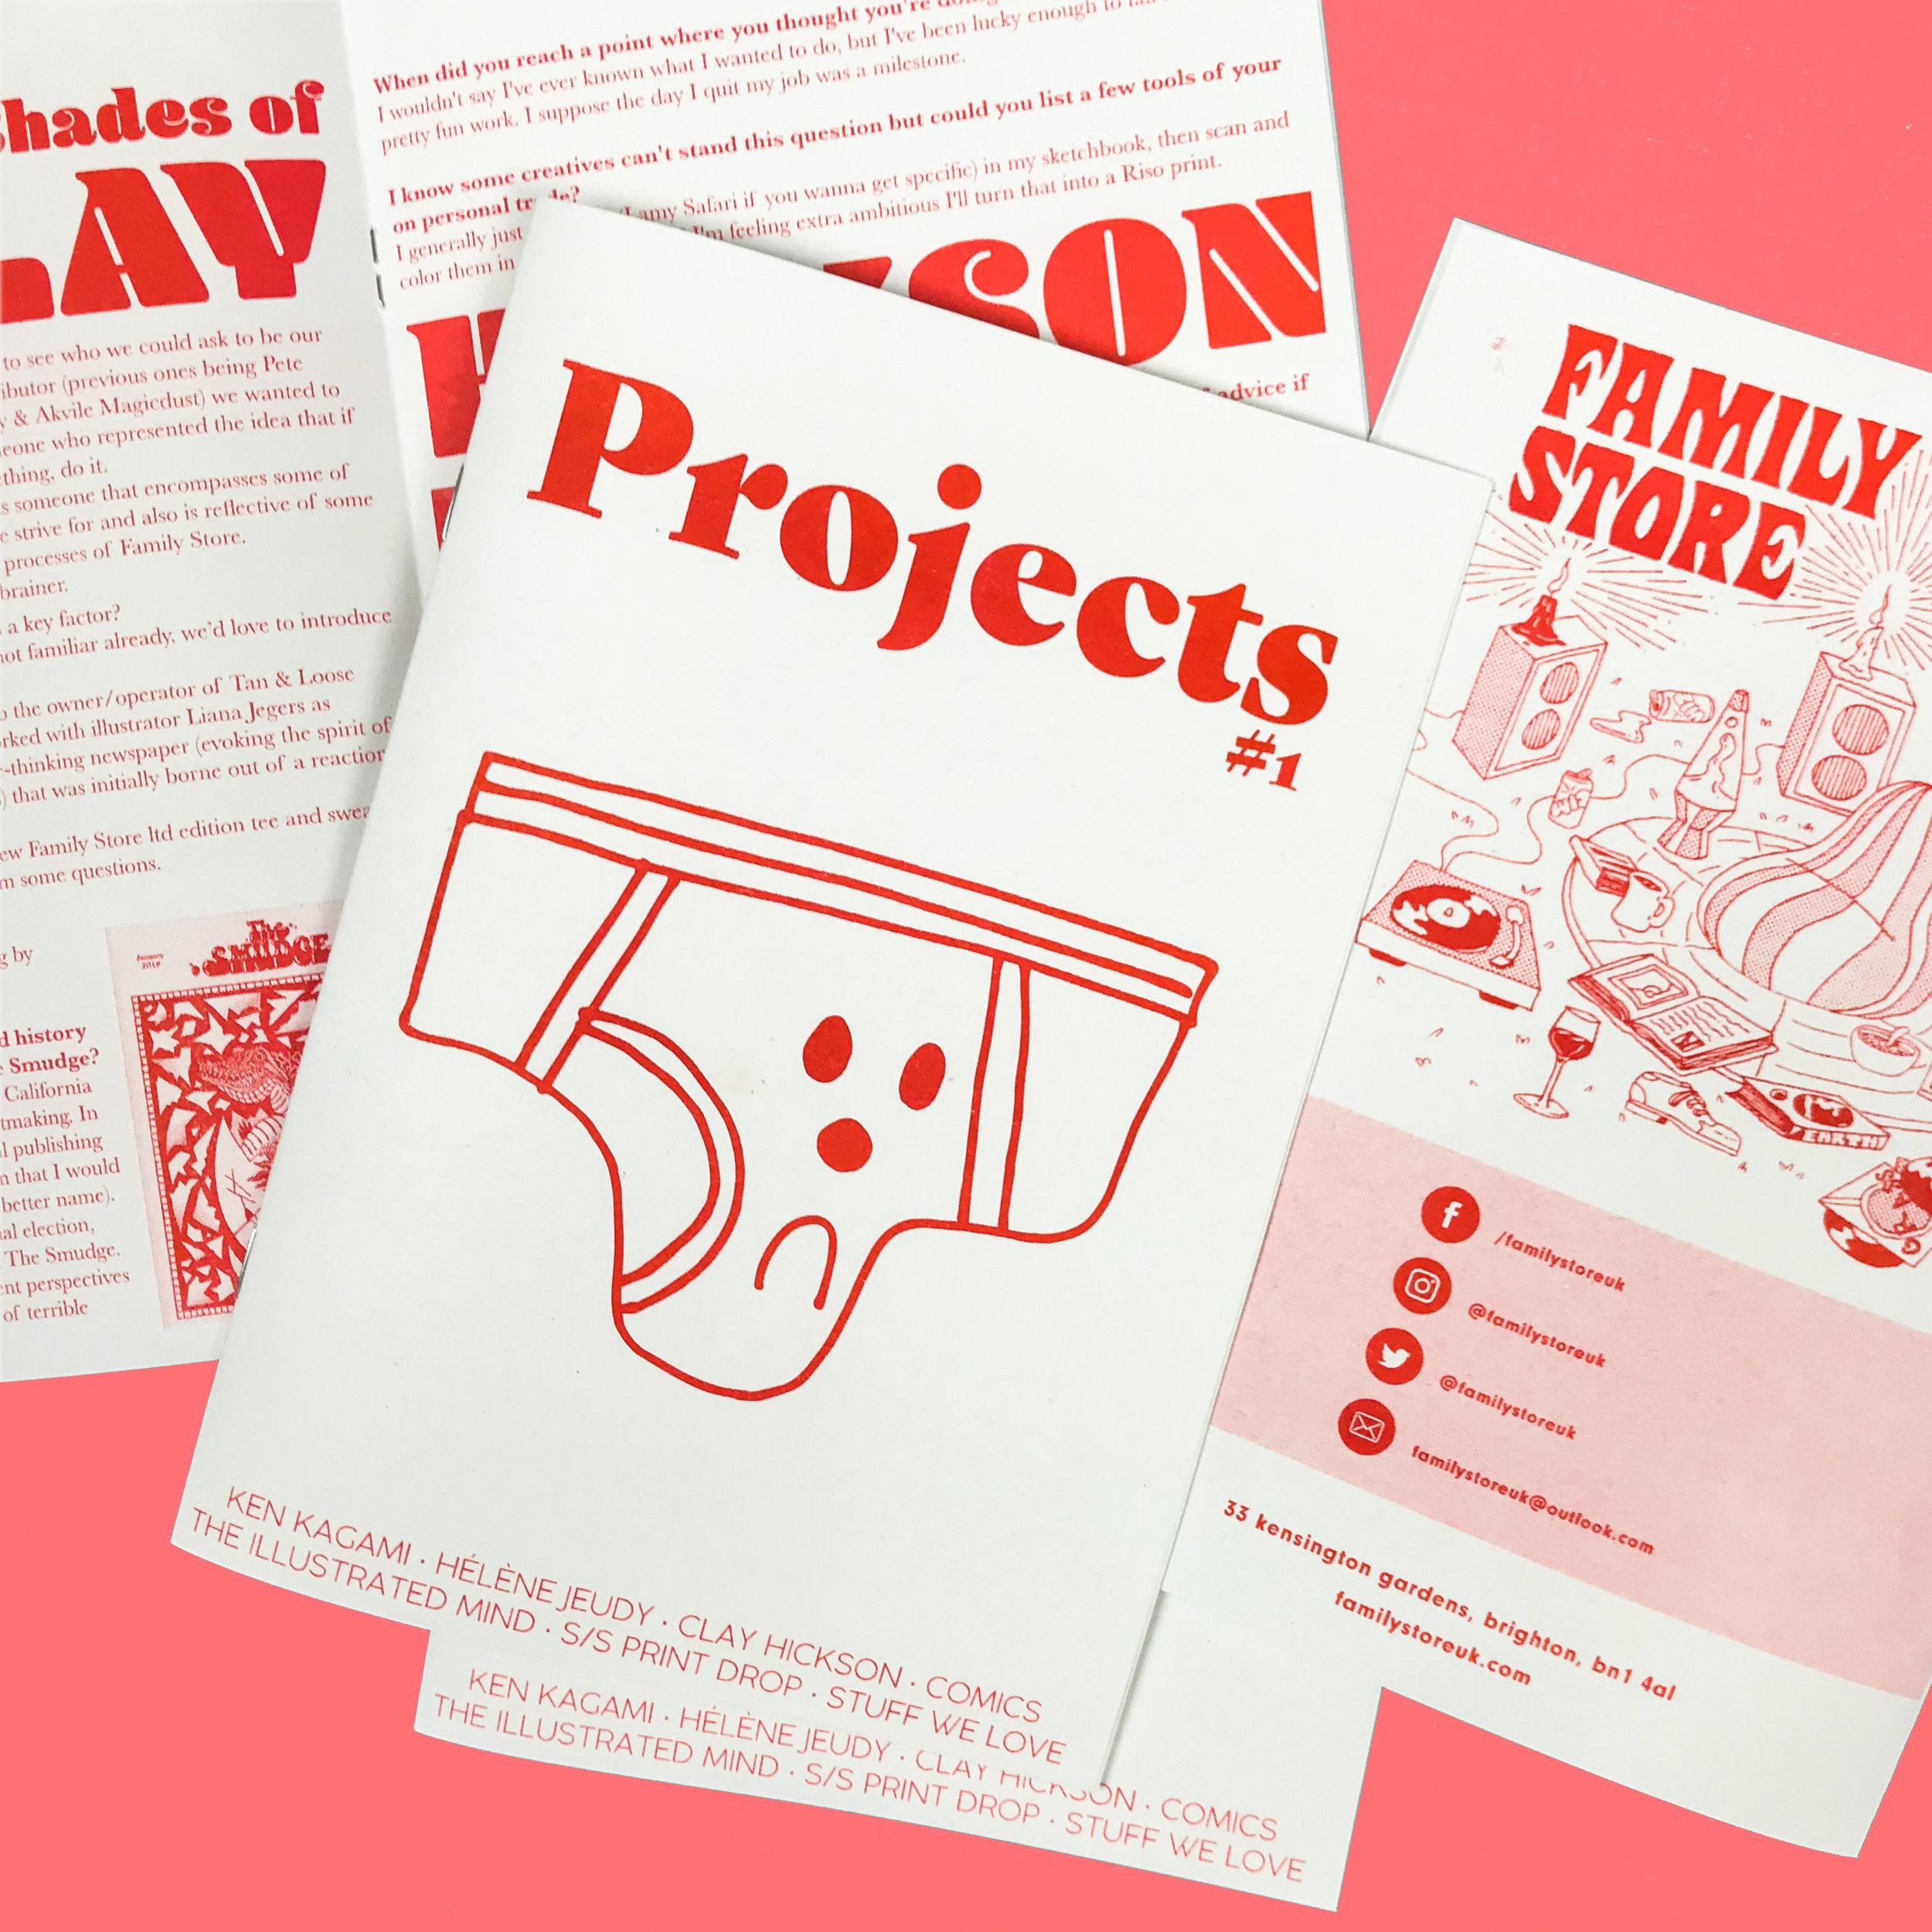 Projects-Zine-Image.jpg